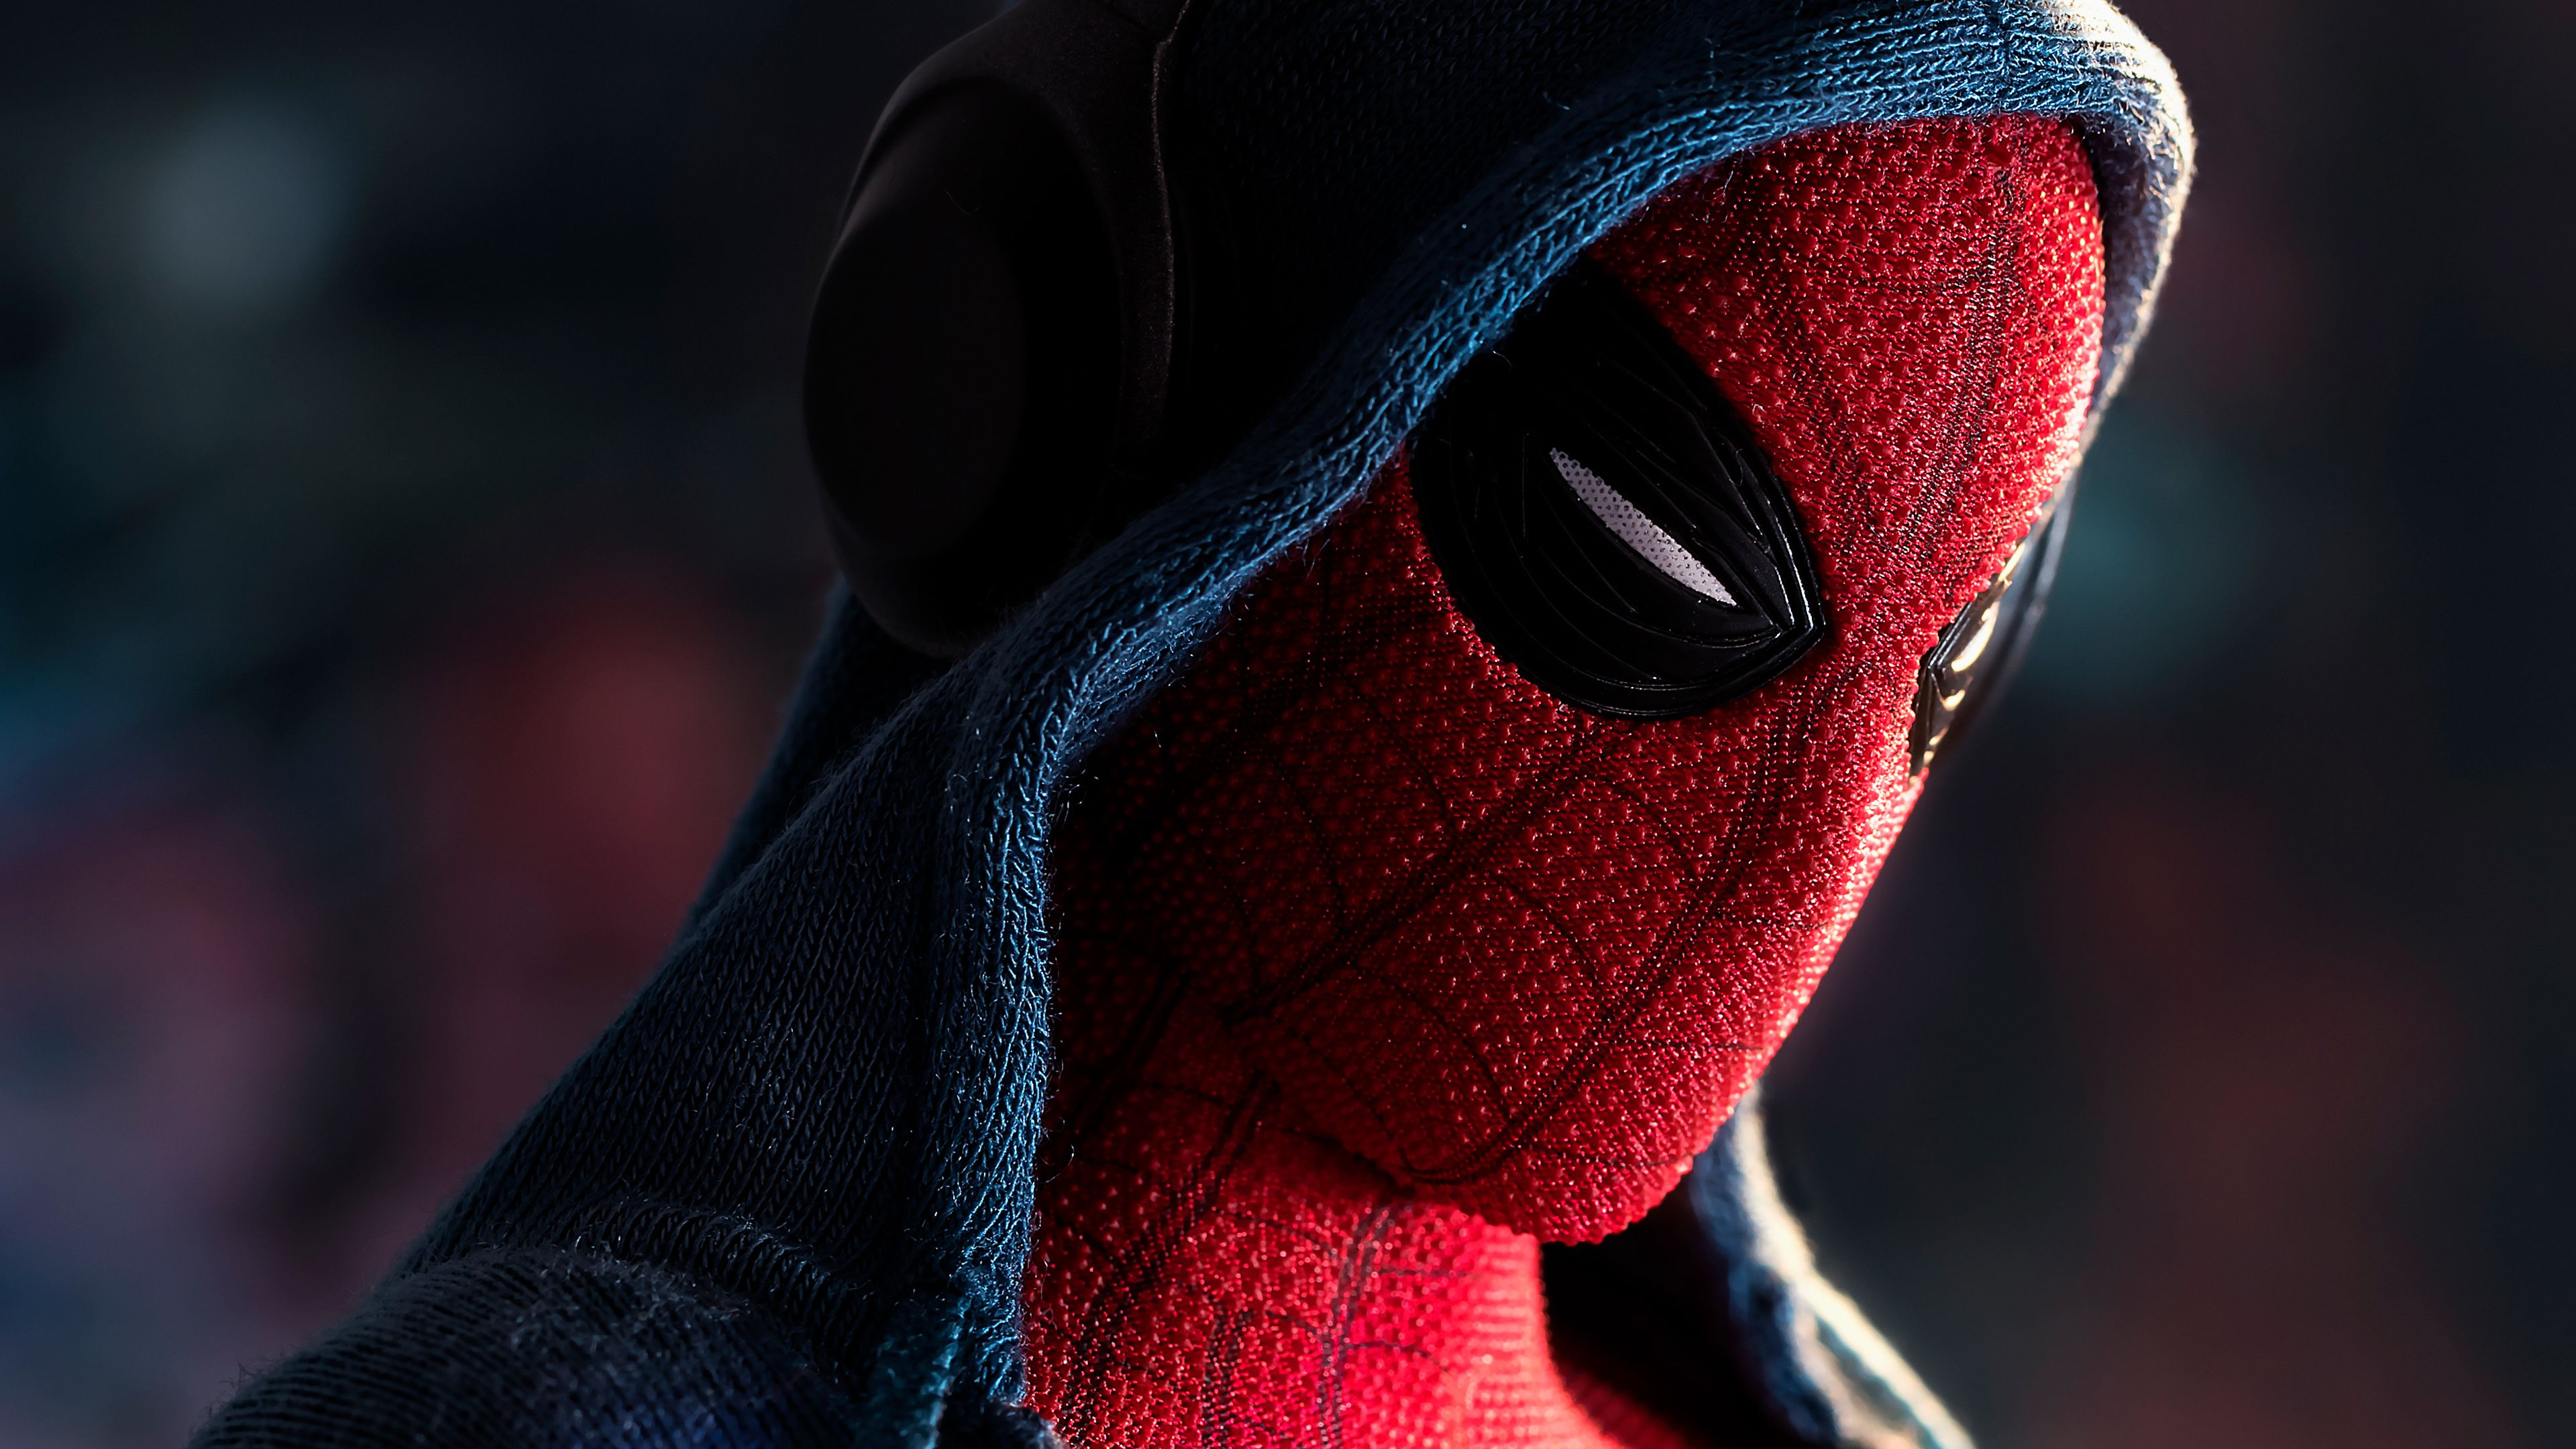 Spiderman In Hoodie 4k Superheroes Wallpapers Spiderman Wallpapers Hd Wallpapers Flickr Wallpapers 4k Wal Hero Wallpaper Spiderman Hd Widescreen Wallpapers